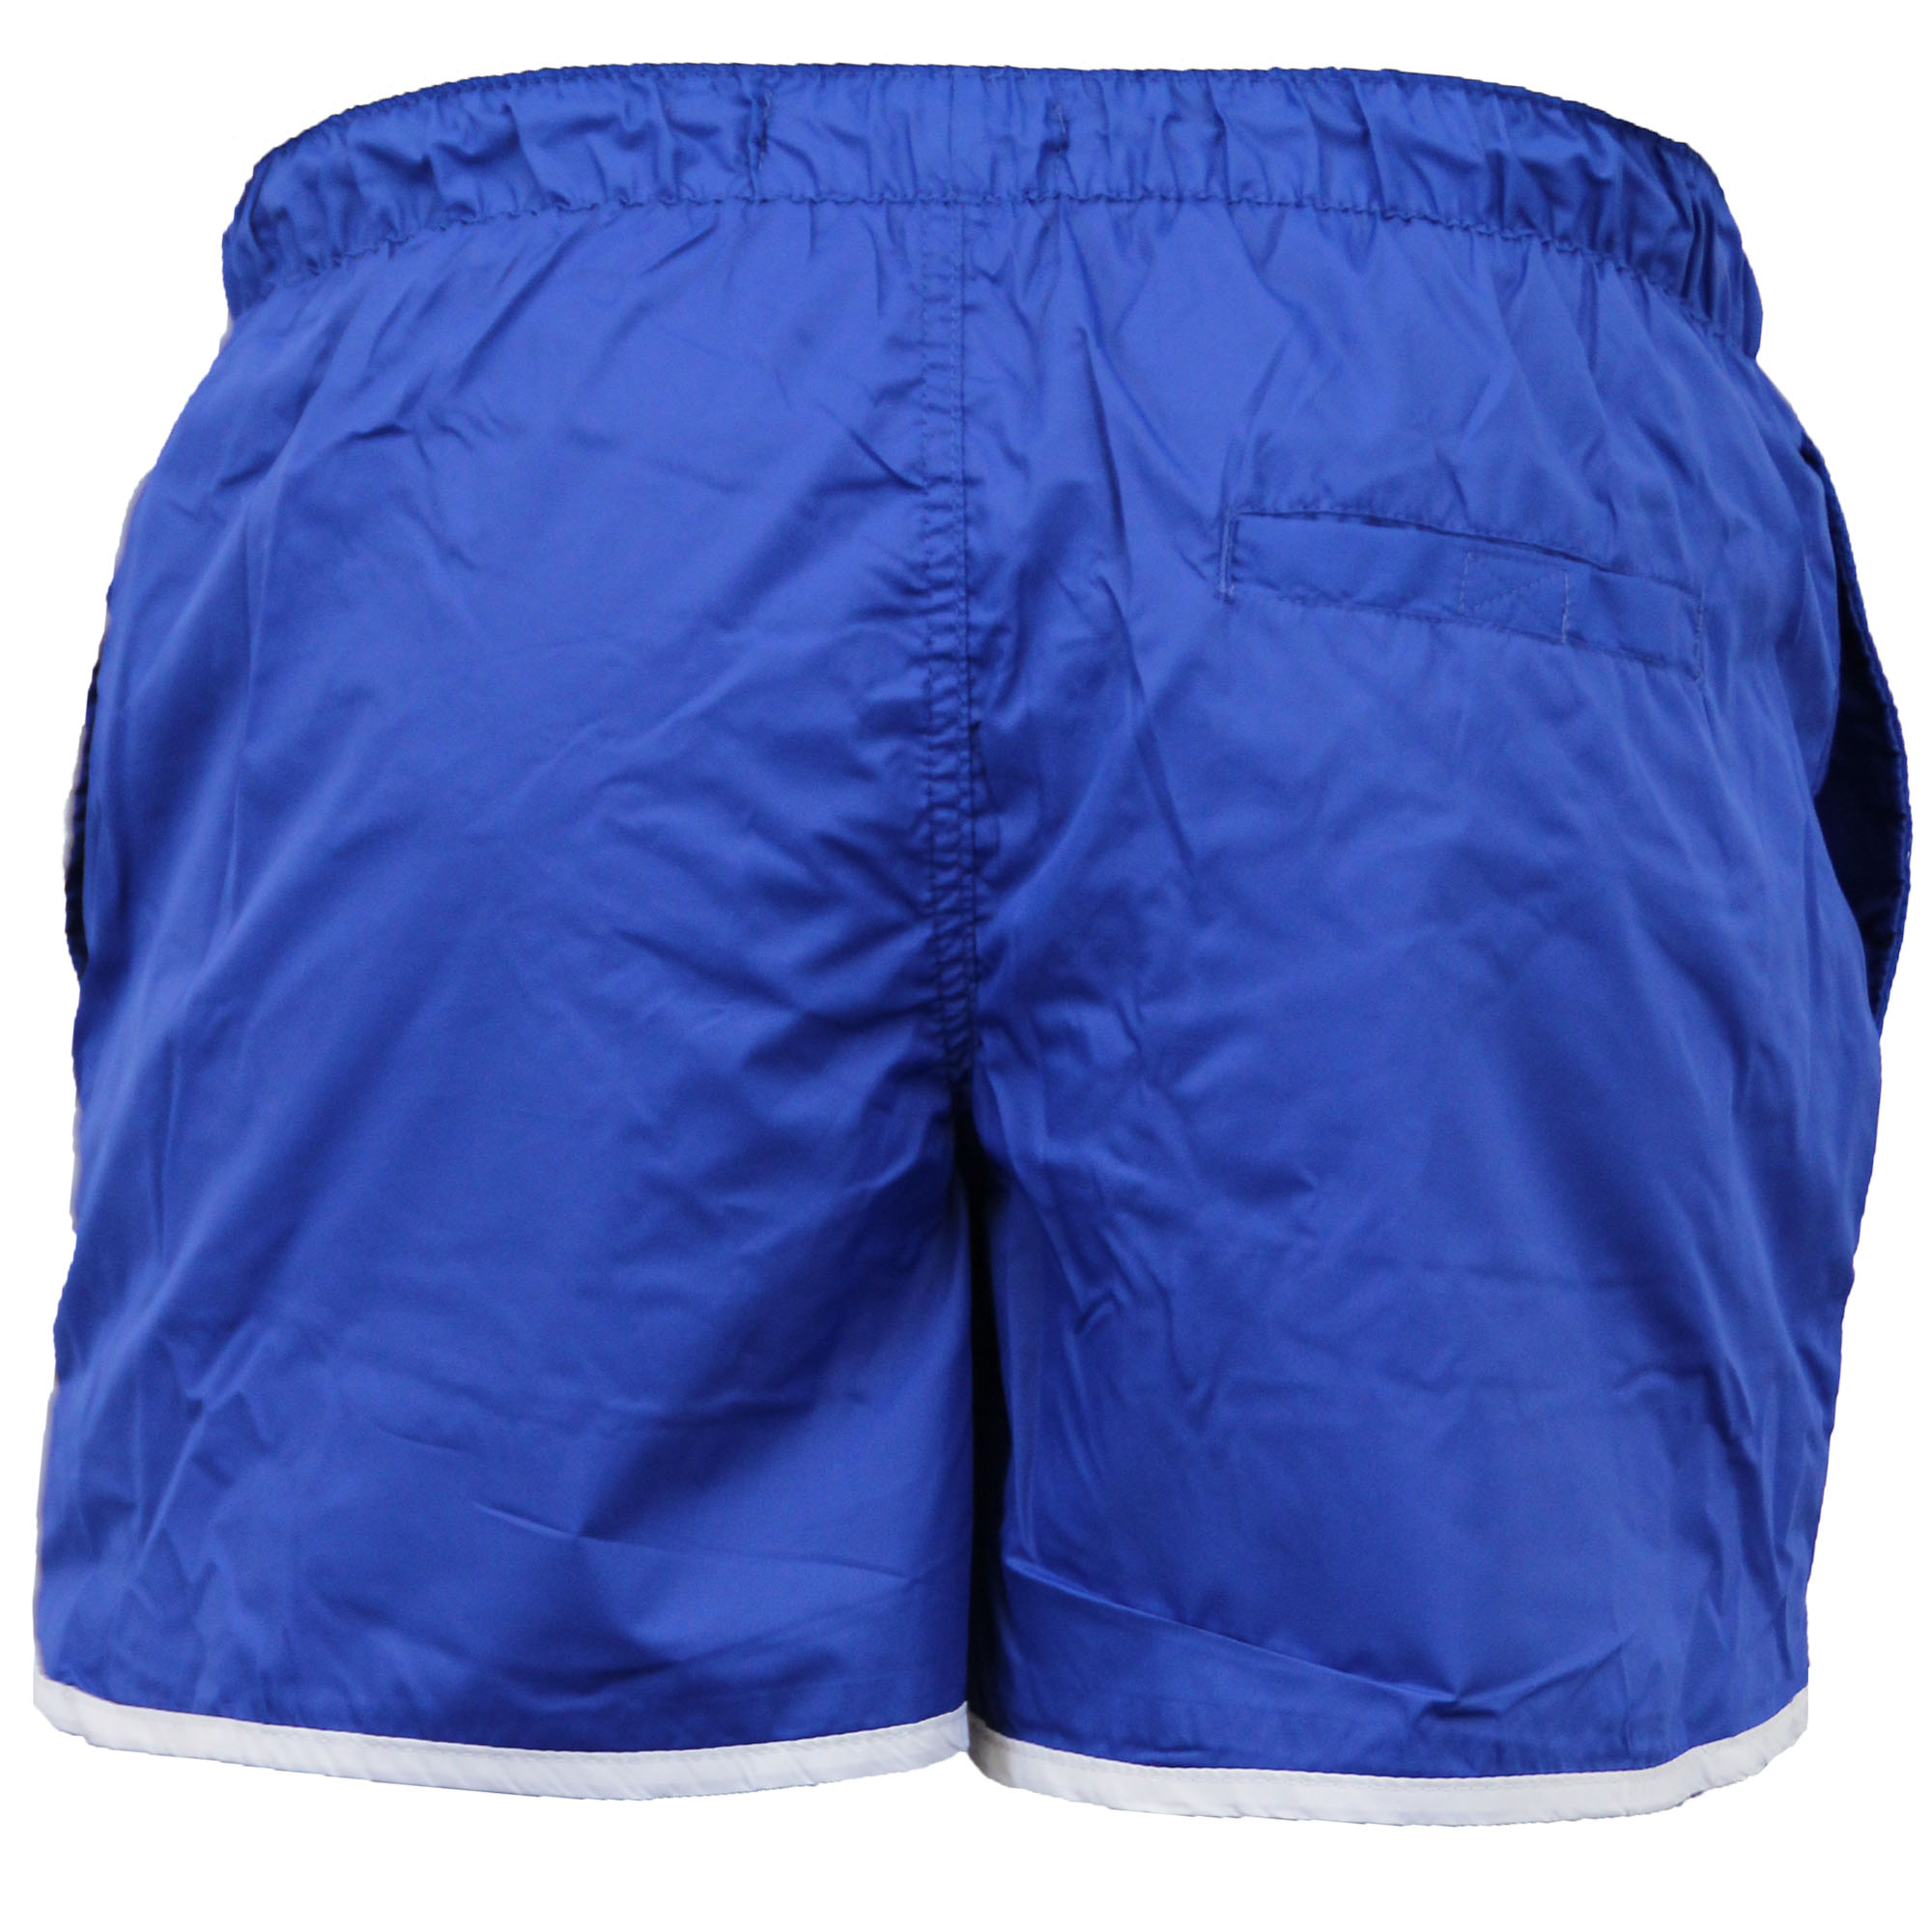 Mens-Swim-Board-Shorts-By-Brave-Soul-Mesh-Lined-New thumbnail 14